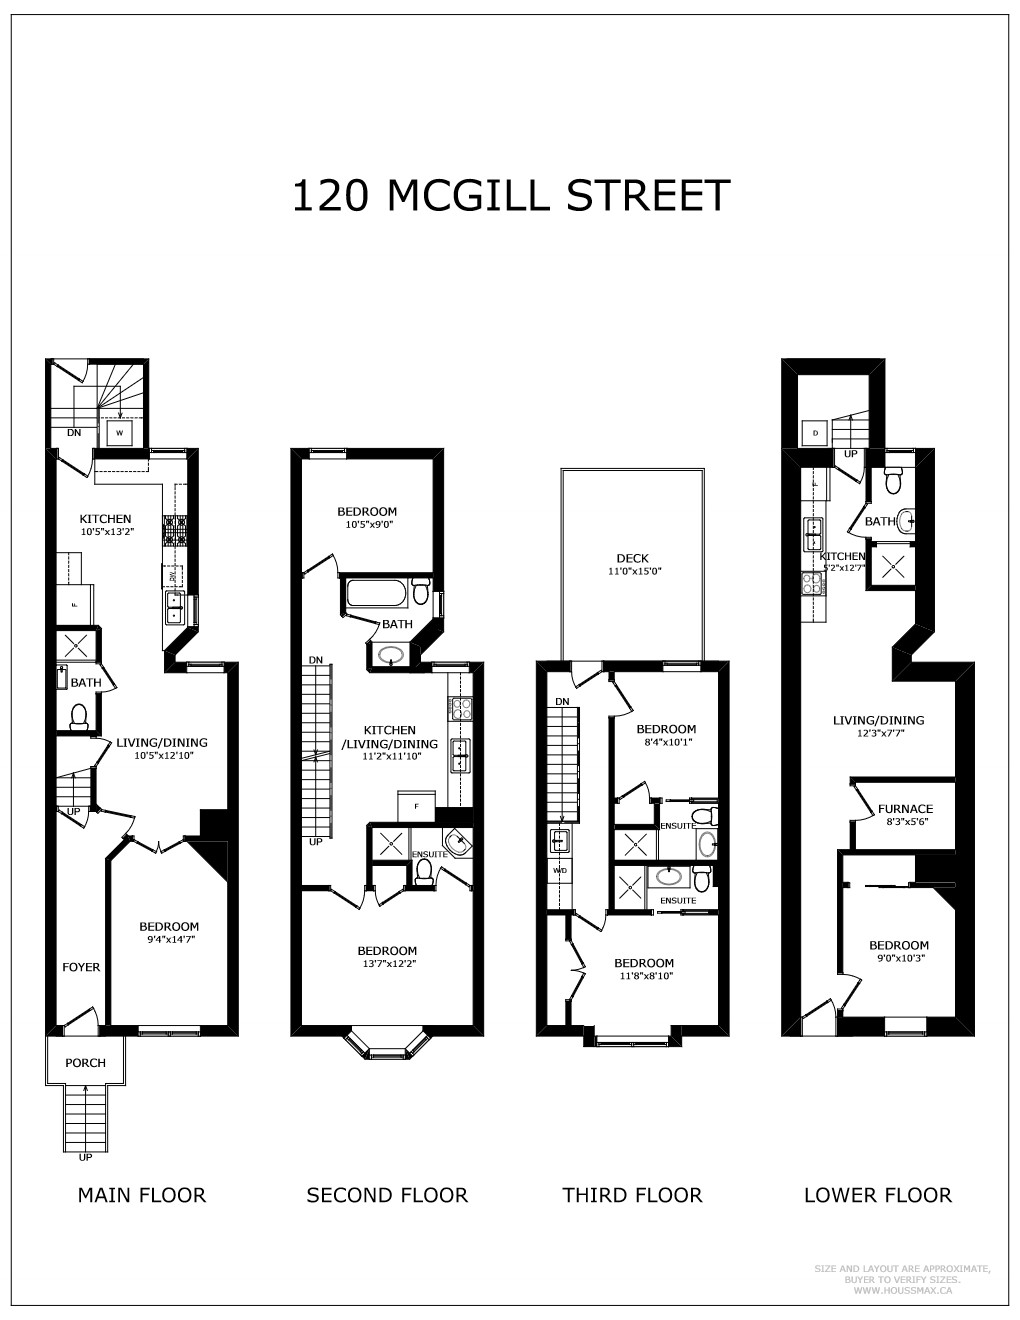 Floor plans for 120 McGill St.